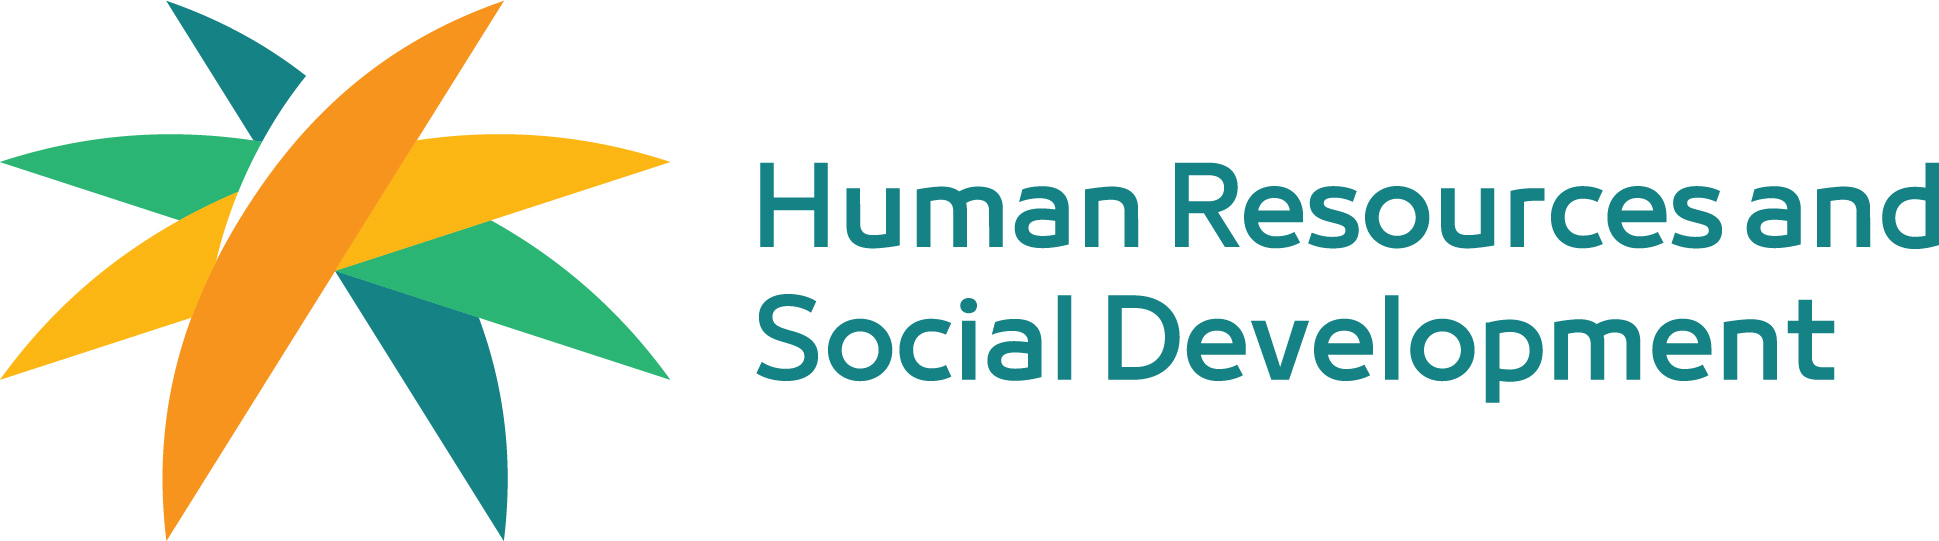 HRSD Launches Index measuring Worker Awareness of their Rights and Duties in the Saudi Labor Market